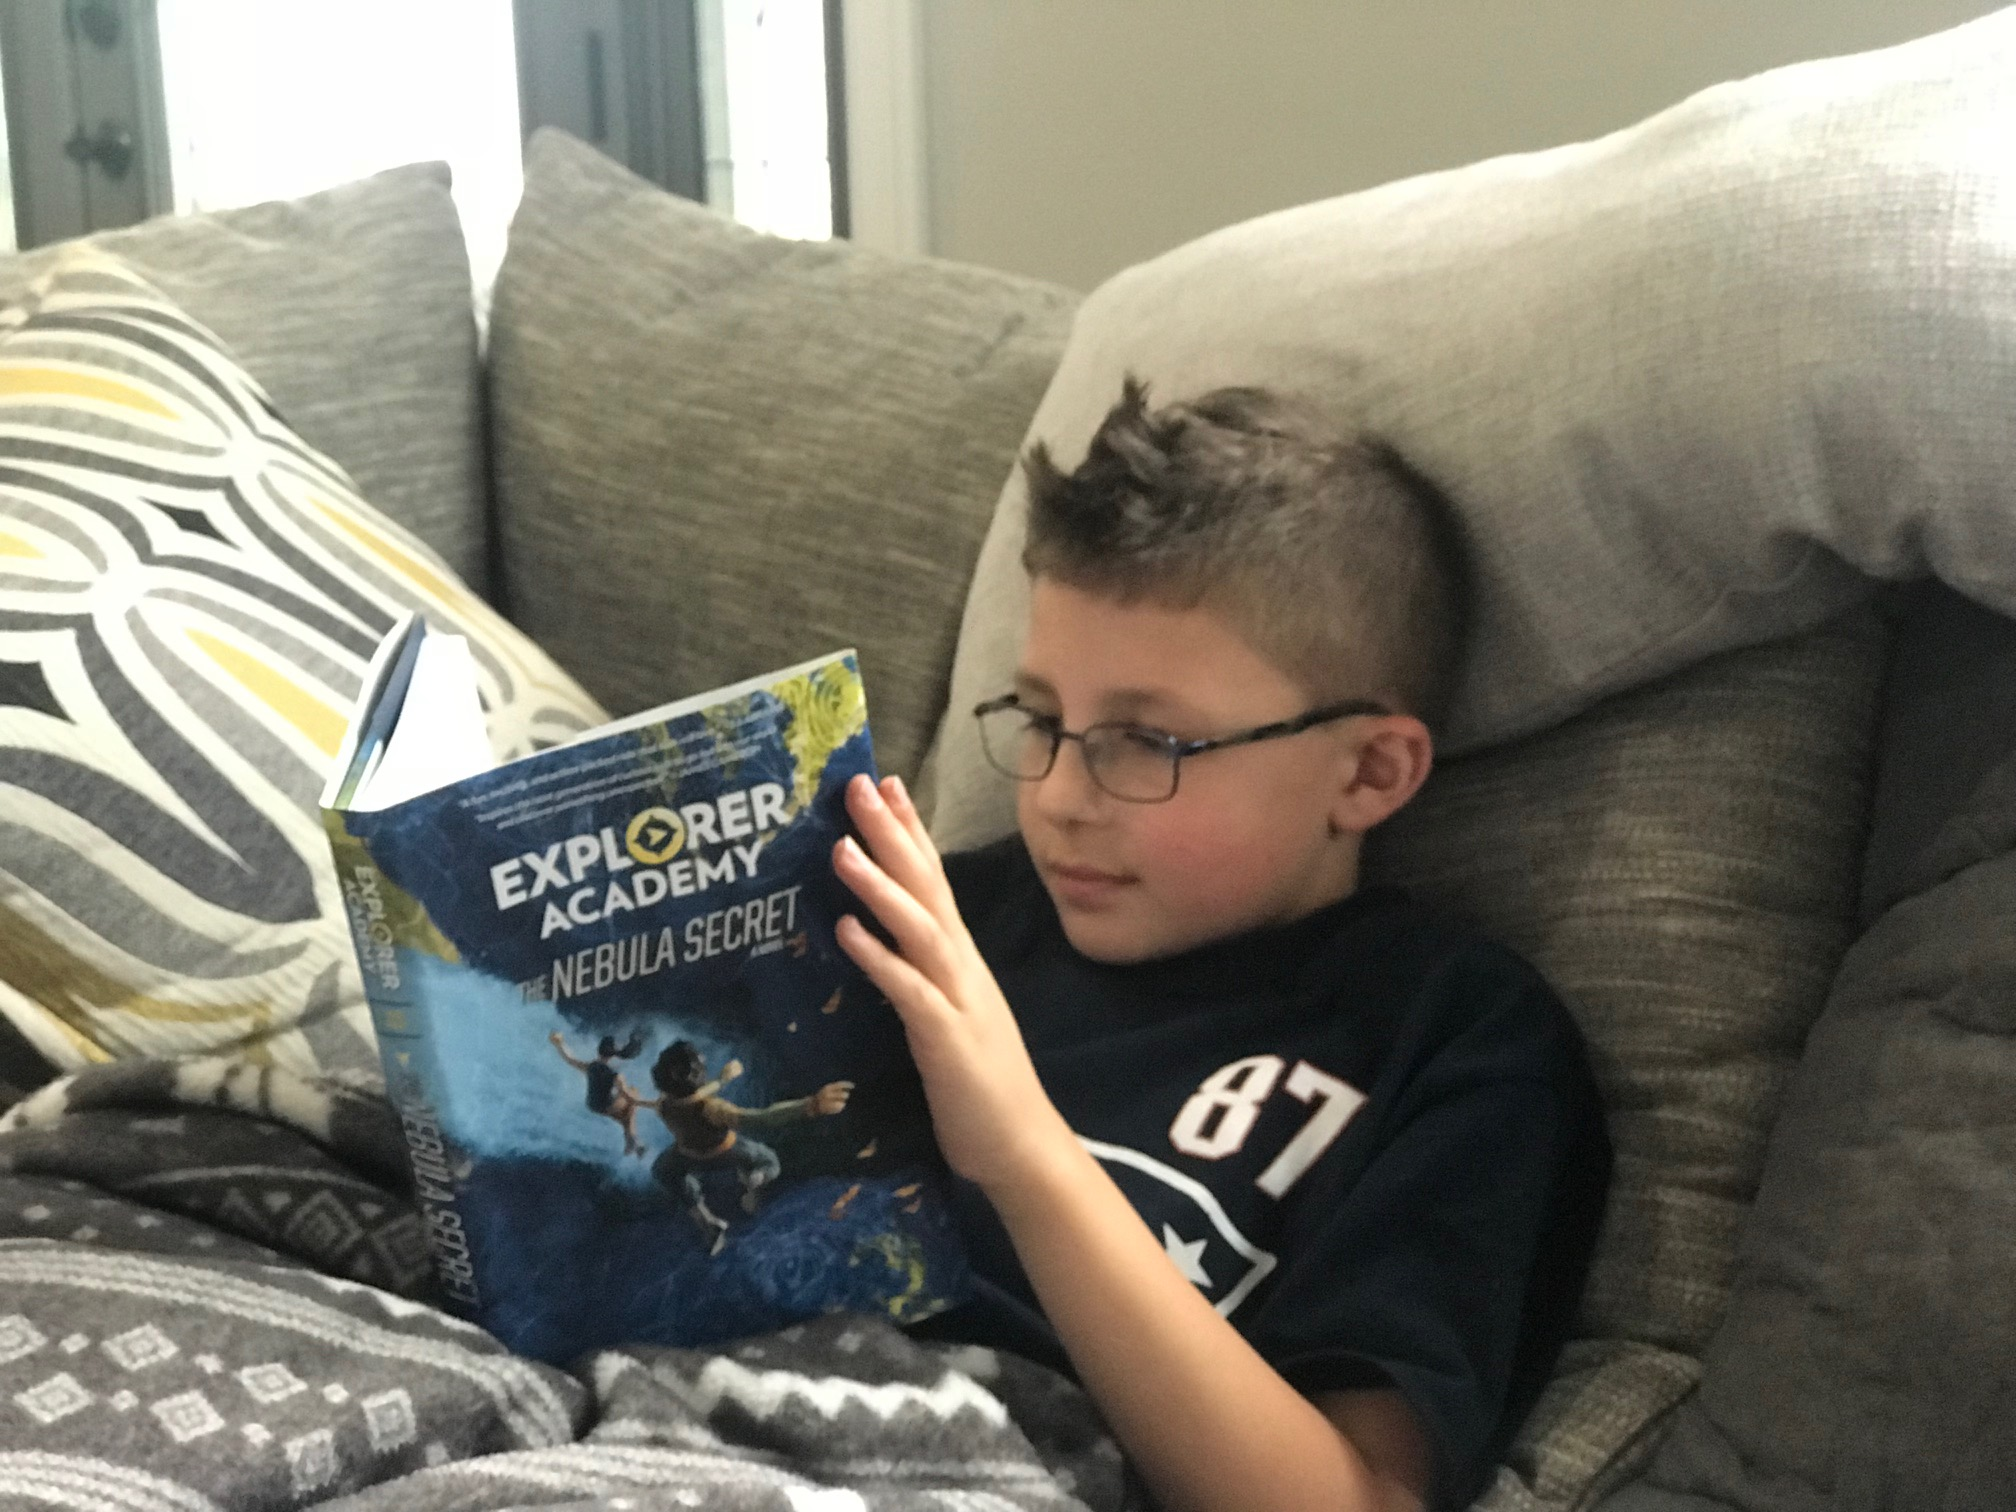 Boy Reading Explorer Academy Nebula Secret